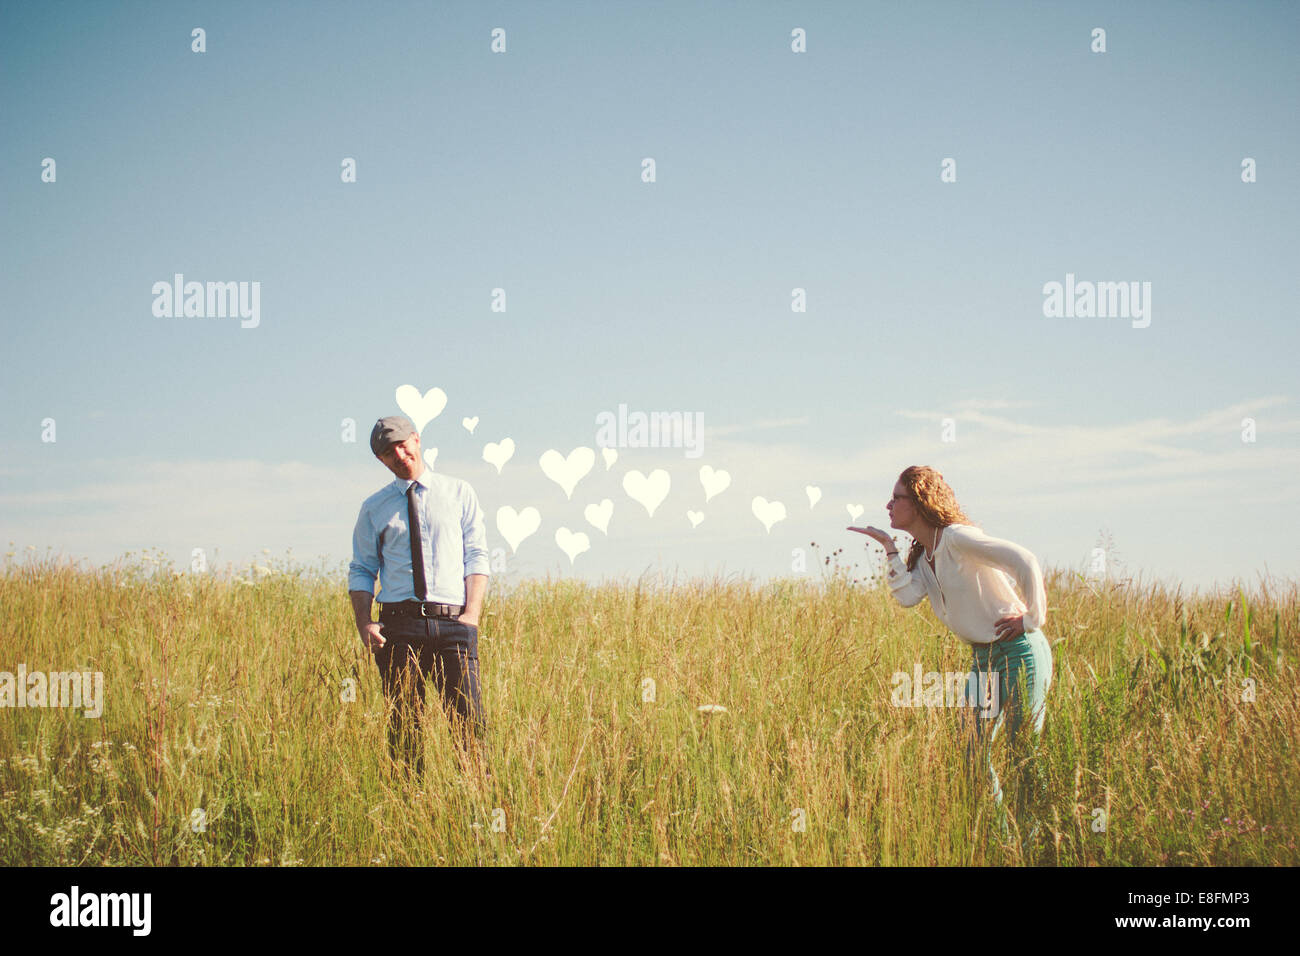 USA, Tennessee, Davidson County, Nashville, Couple blowing hearts on meadow - Stock Image